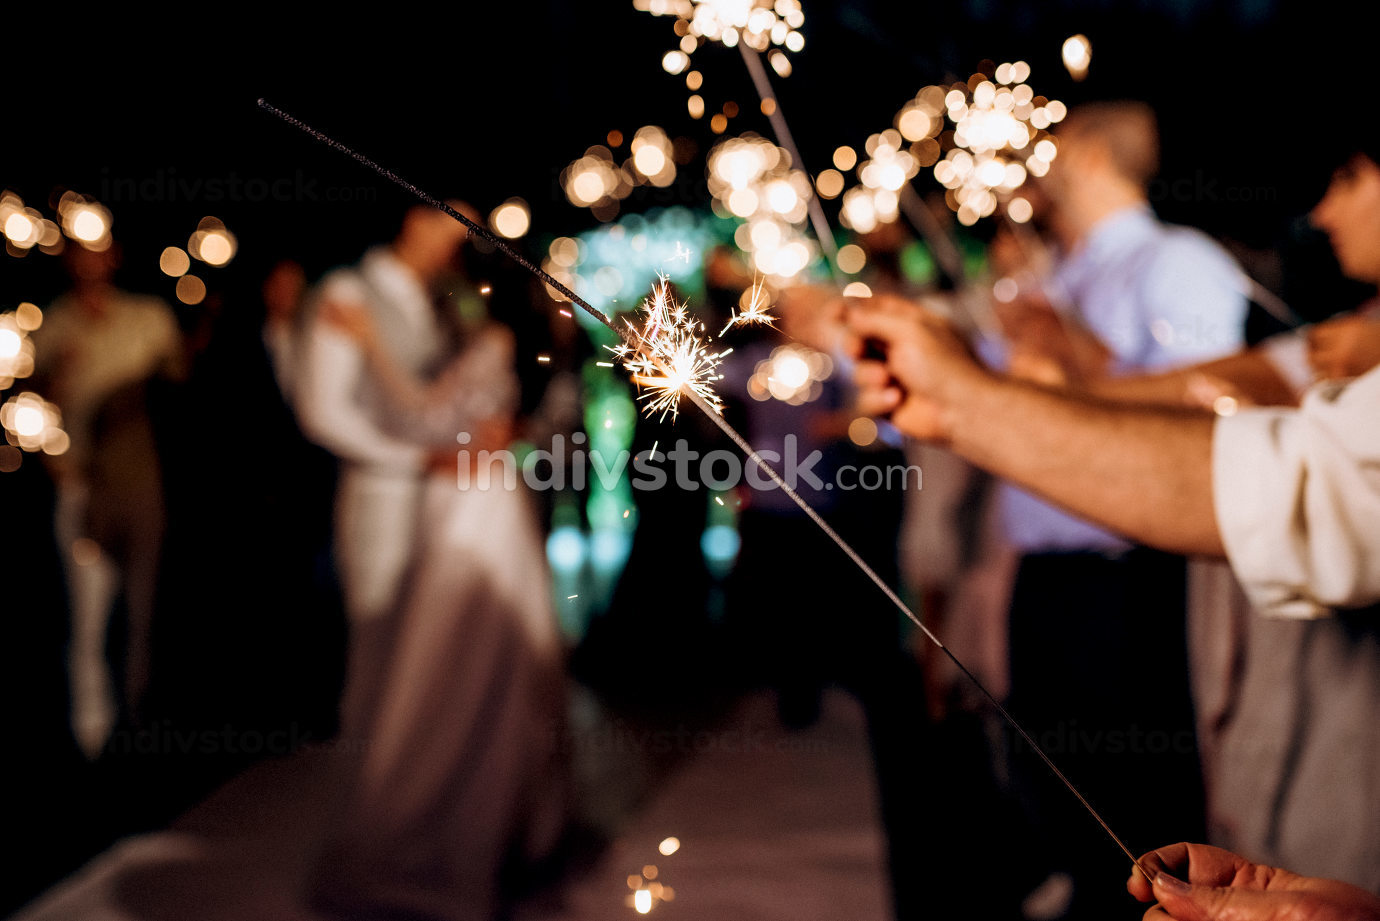 sparklers at the wedding,  on the background